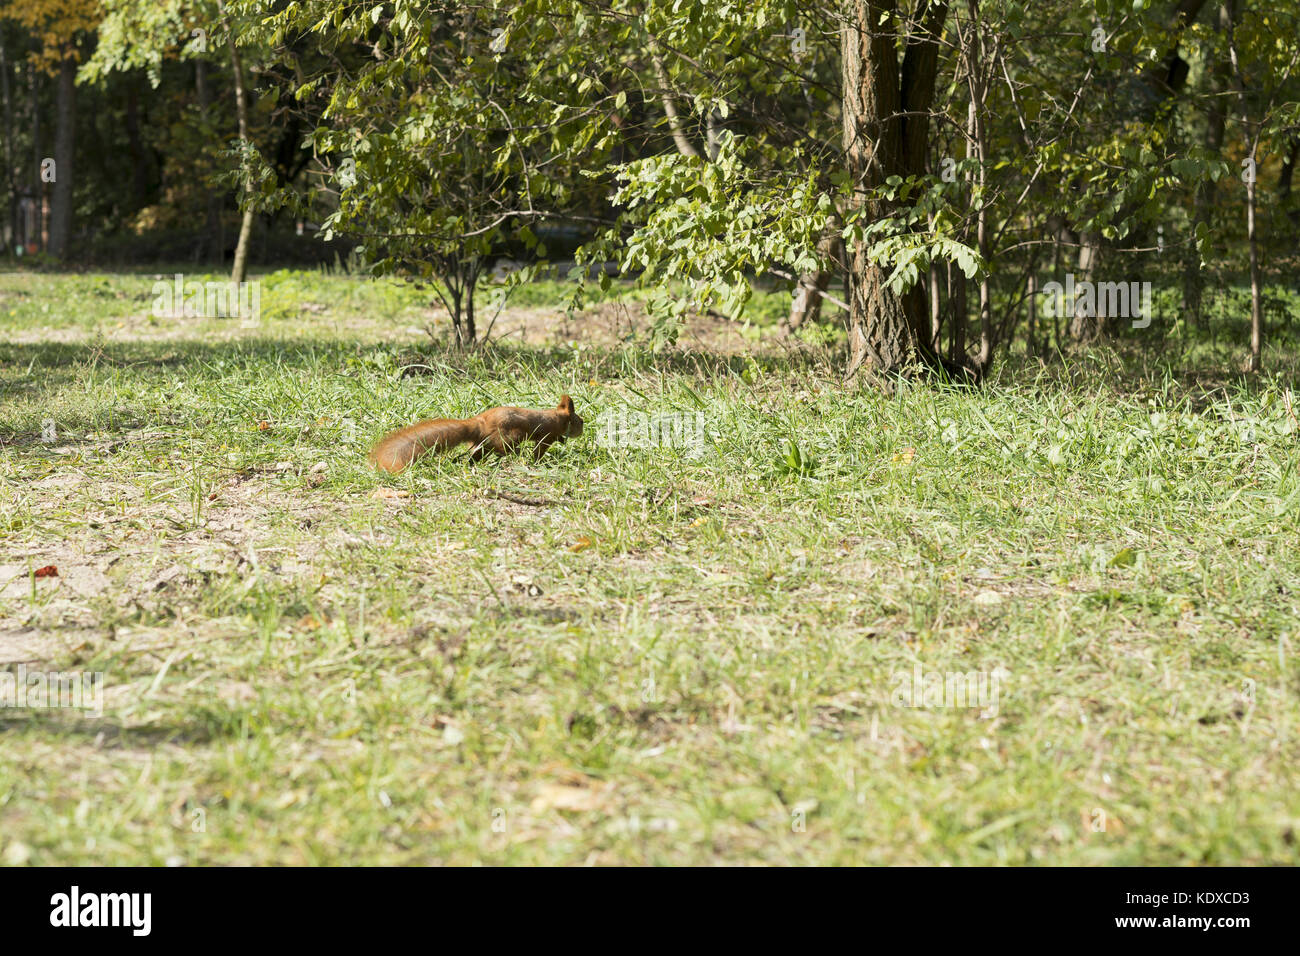 Squirrel runs through the forest - Stock Image